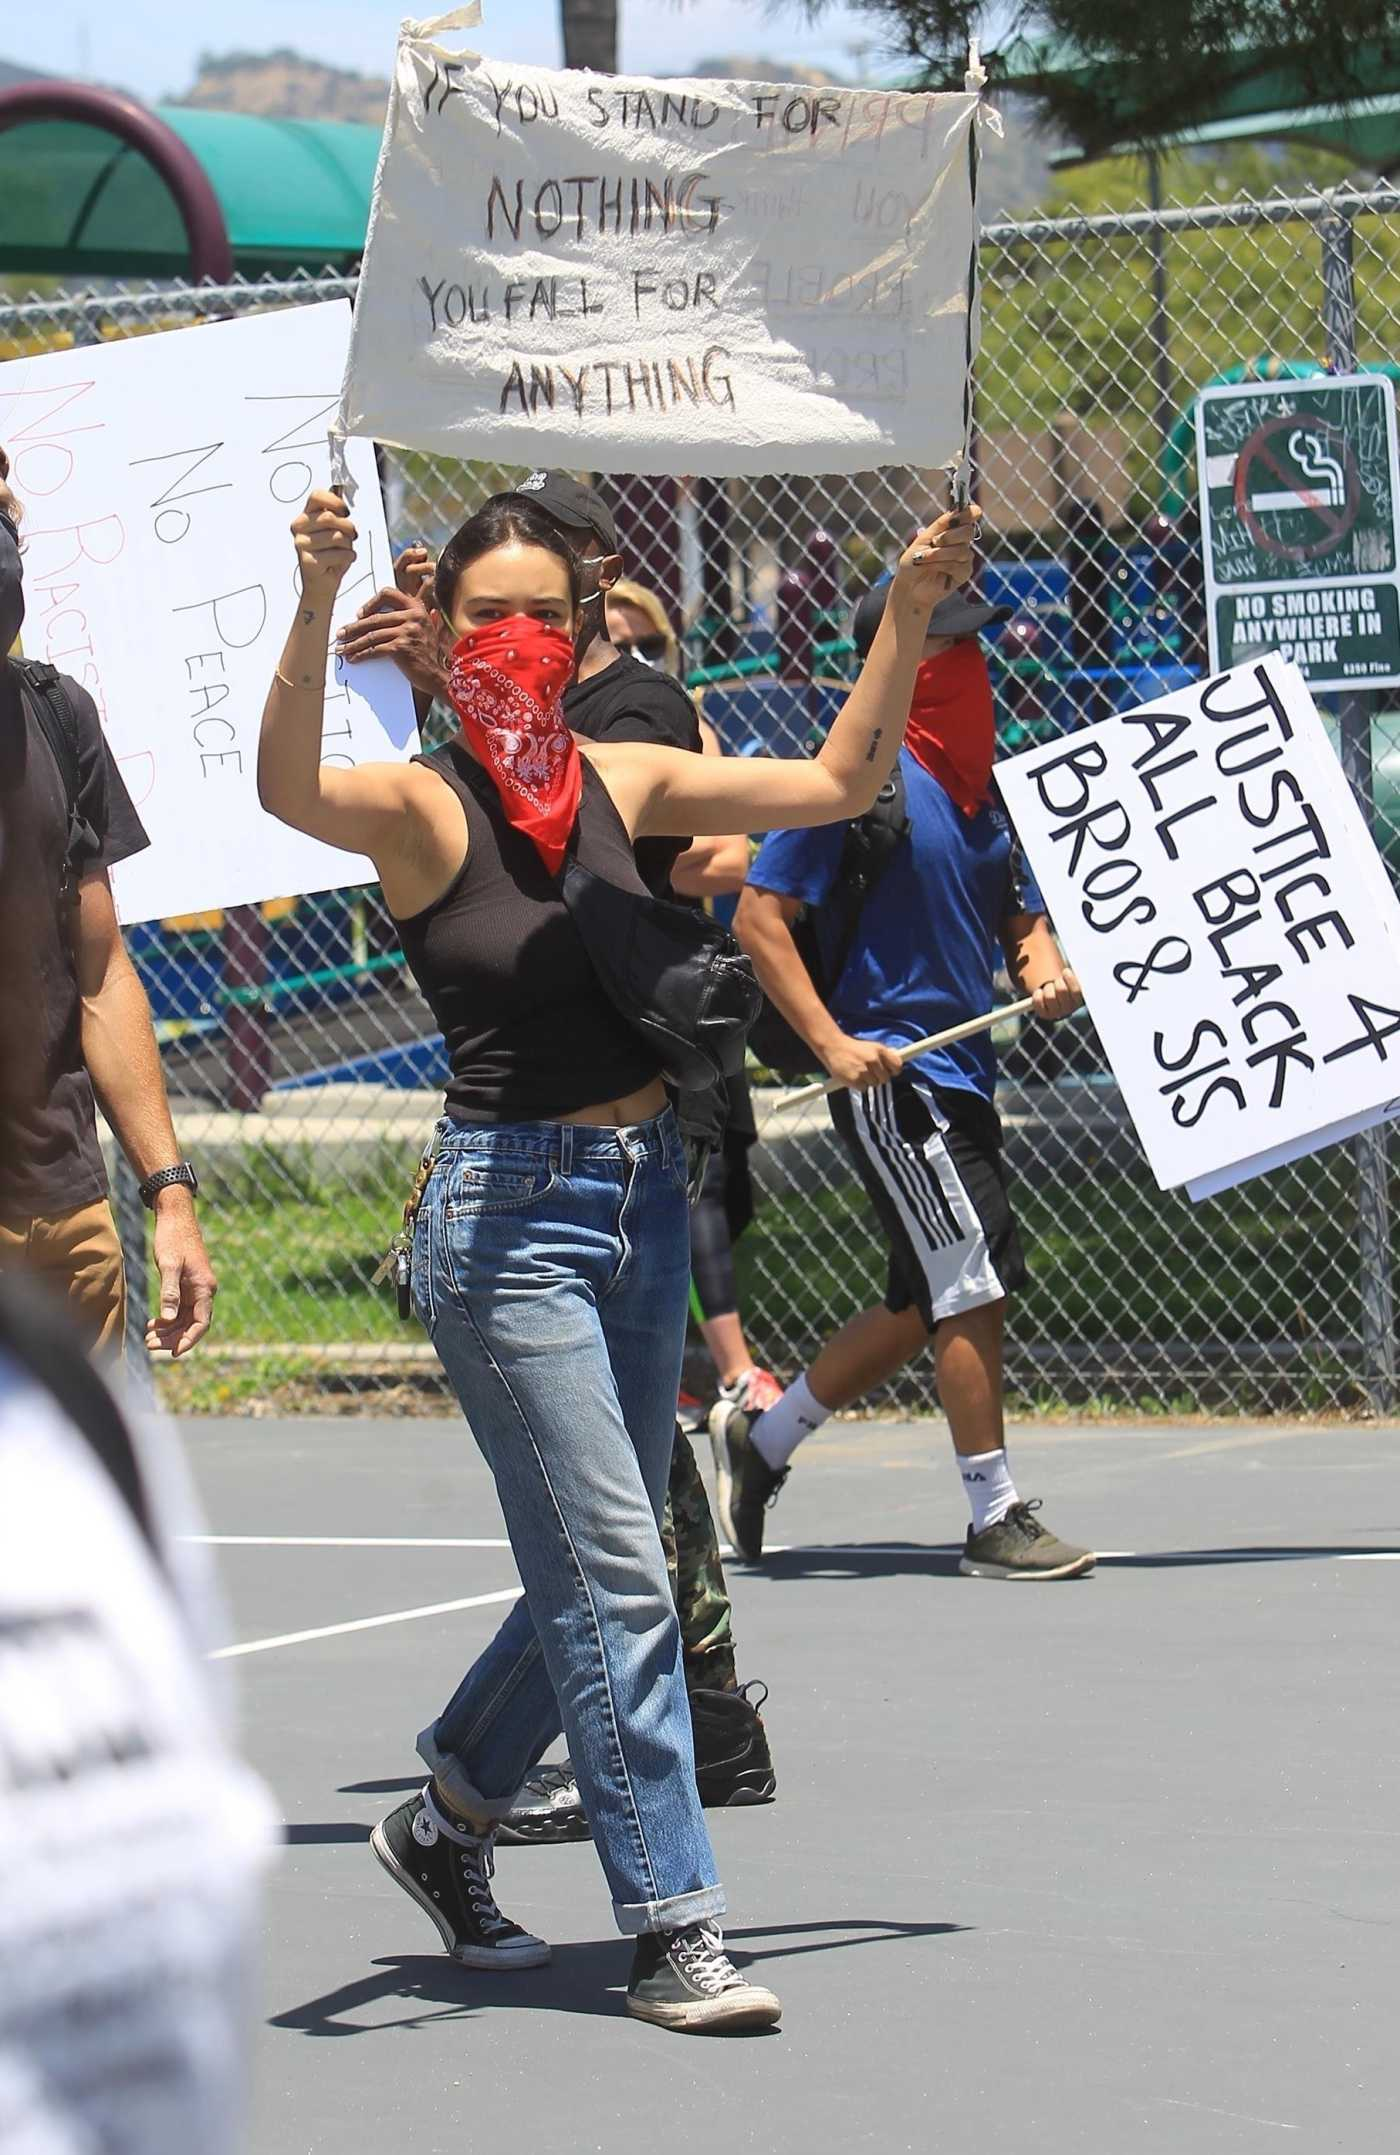 Courtney Eaton in a Red Bandana as a Face Mask Attends the Black Lives Matter Protest in Los Angeles 05/30/2020